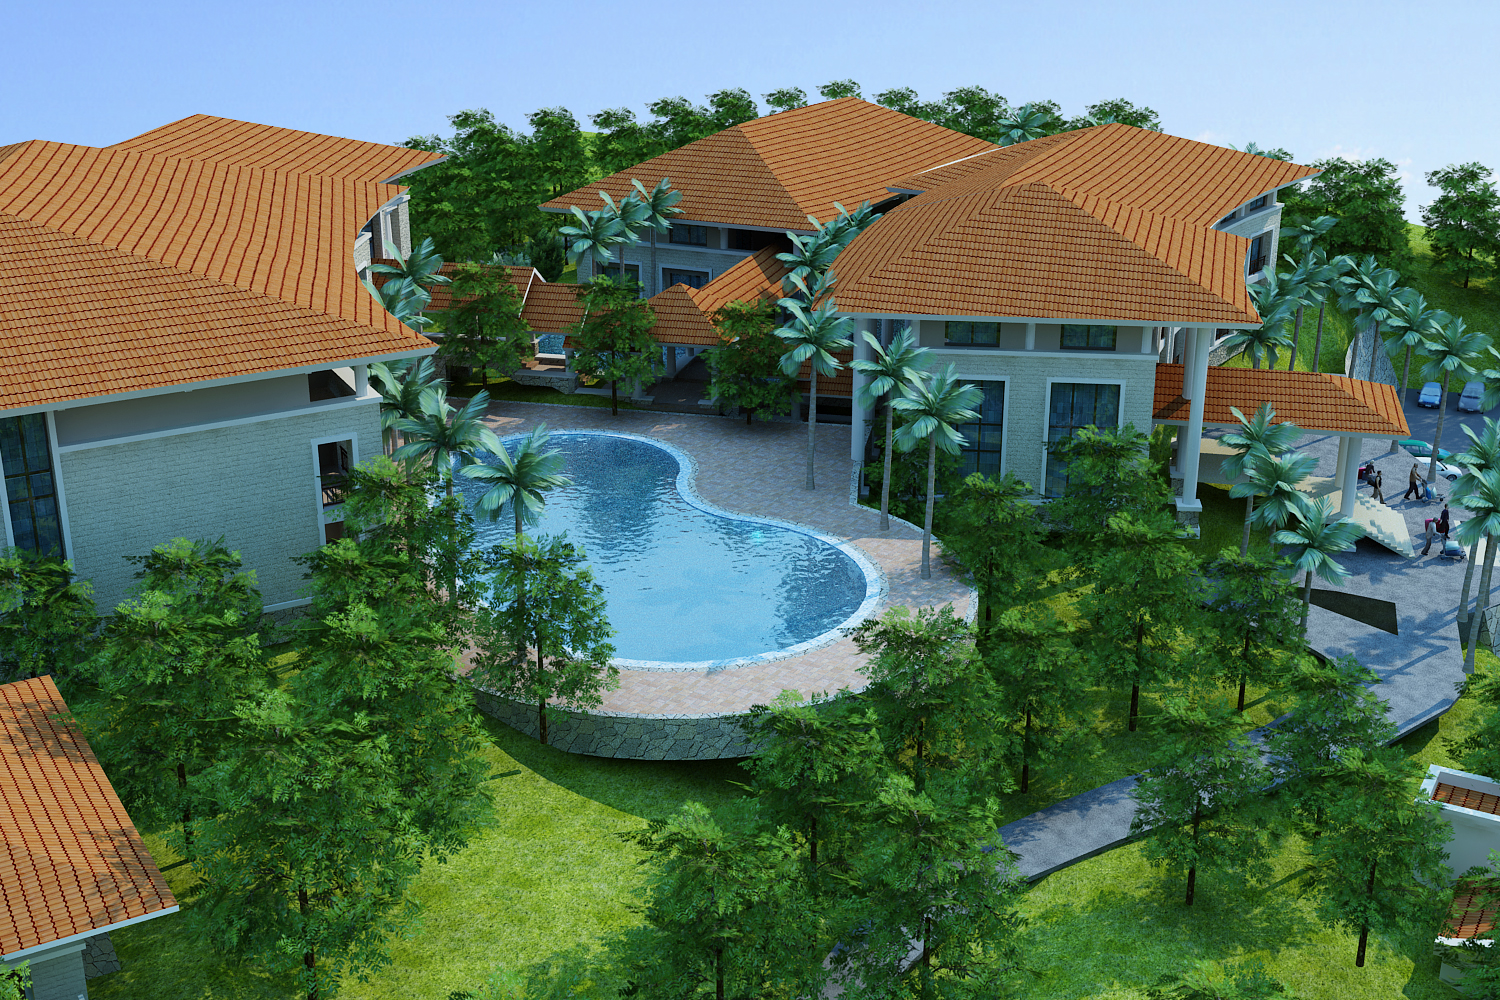 moutain resort hotel 3d model max other 159077